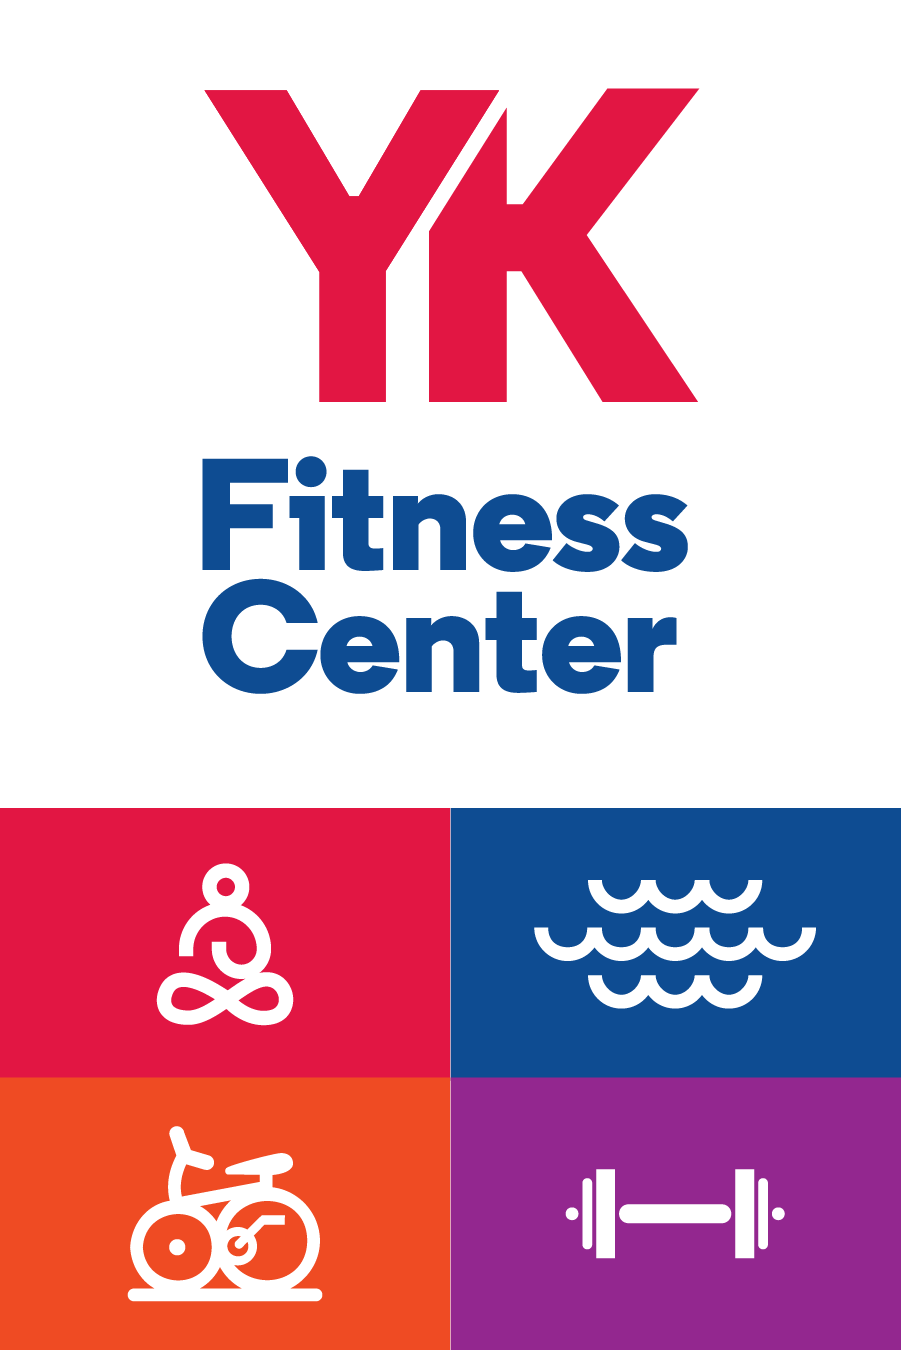 YK Fitness Center